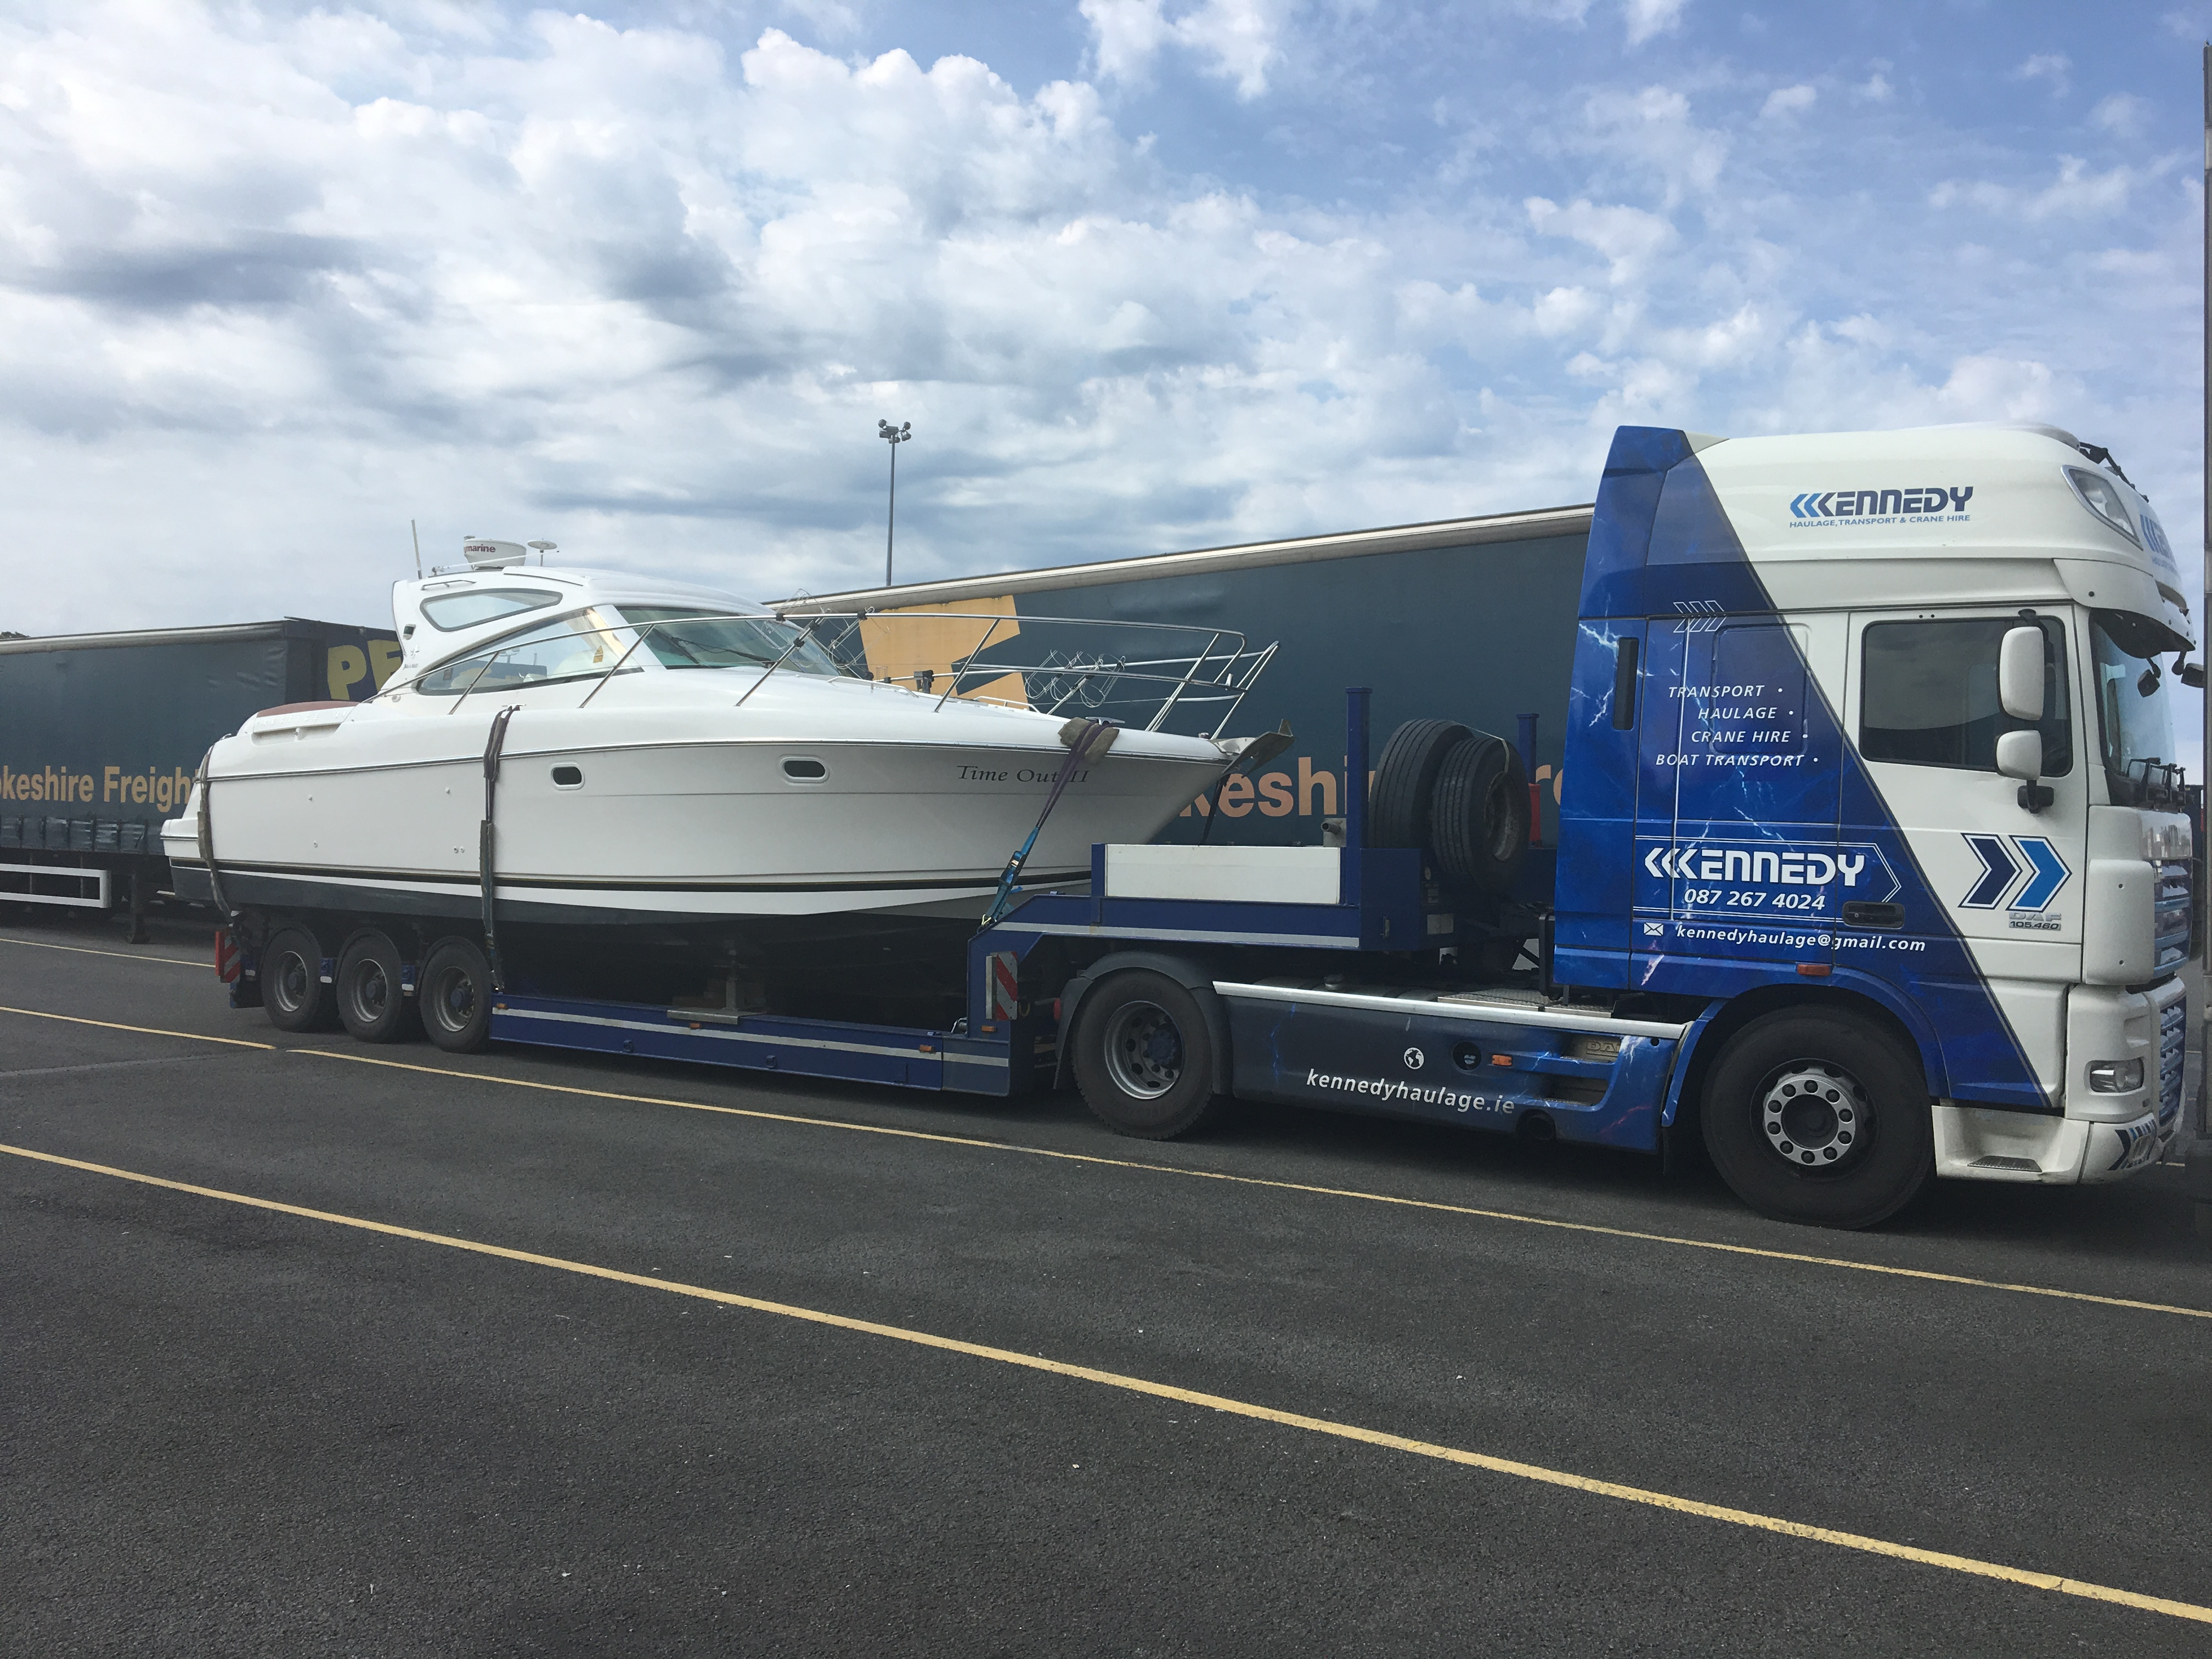 Haulage Contractor Boat Transport Kennedy Haulage Haulier